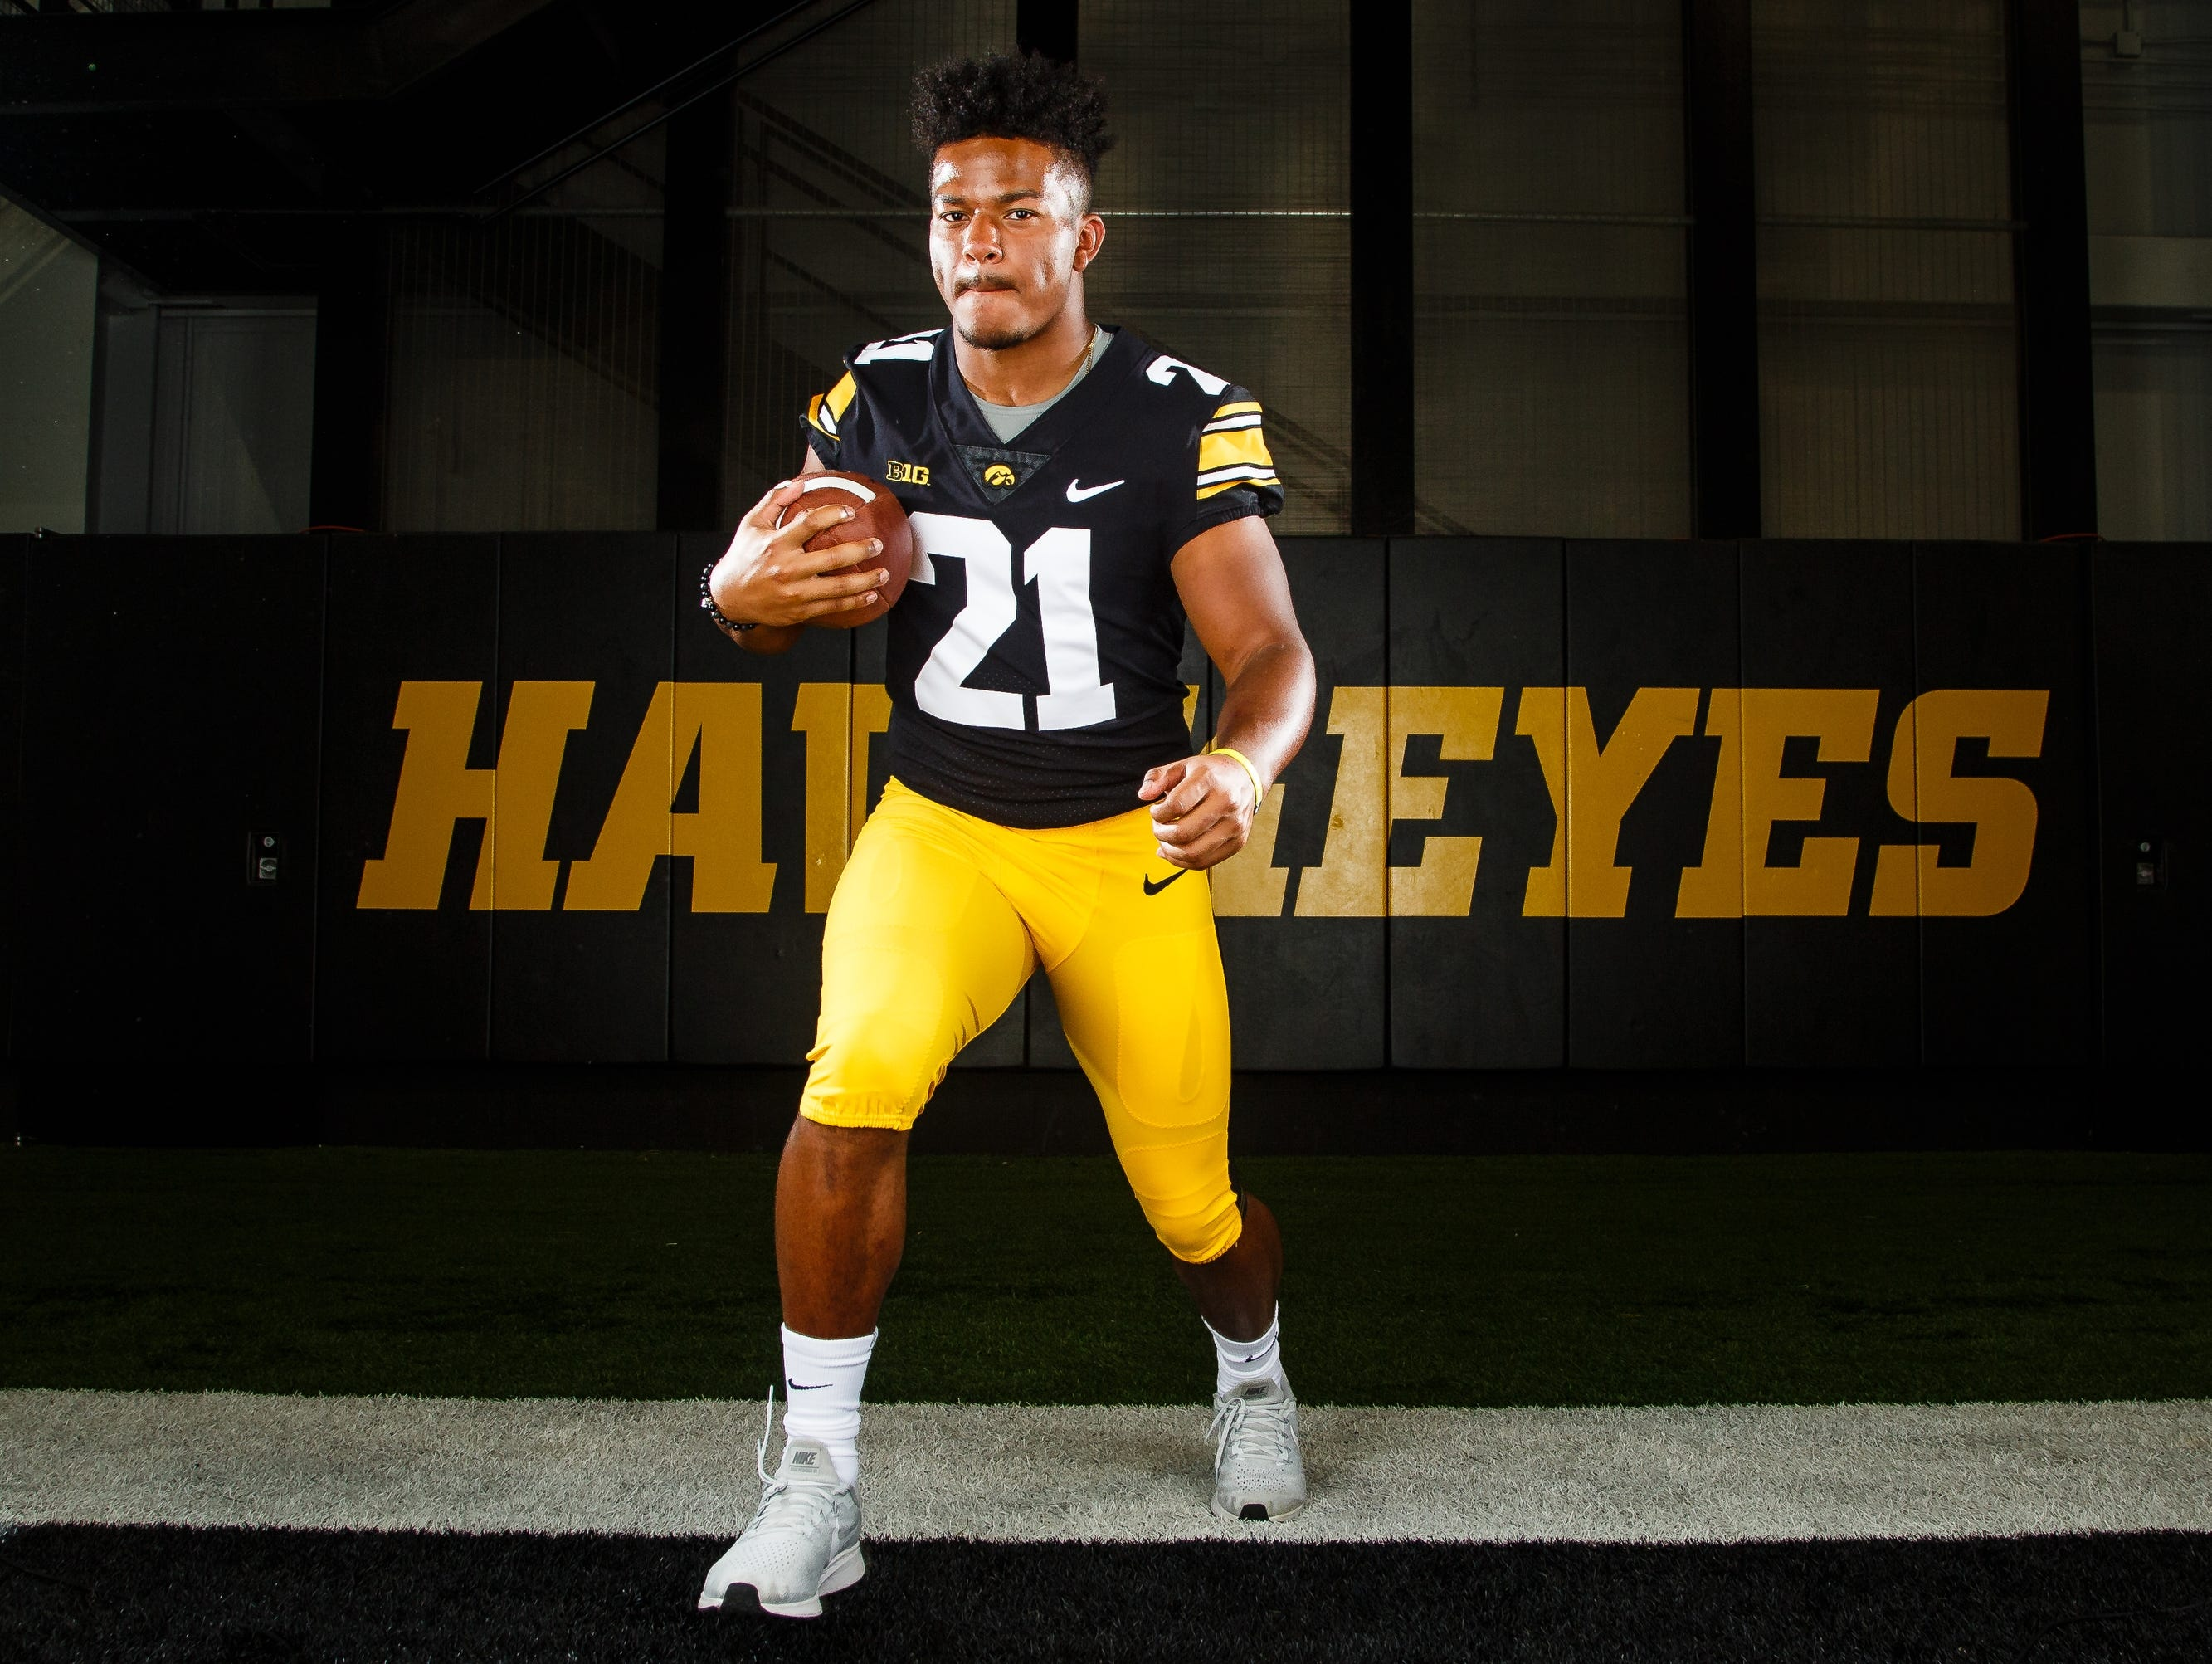 Iowa's Ivory Kelly-Martin poses for a photo during the Iowa Football media day on Friday, Aug. 10, 2018 in Iowa City.